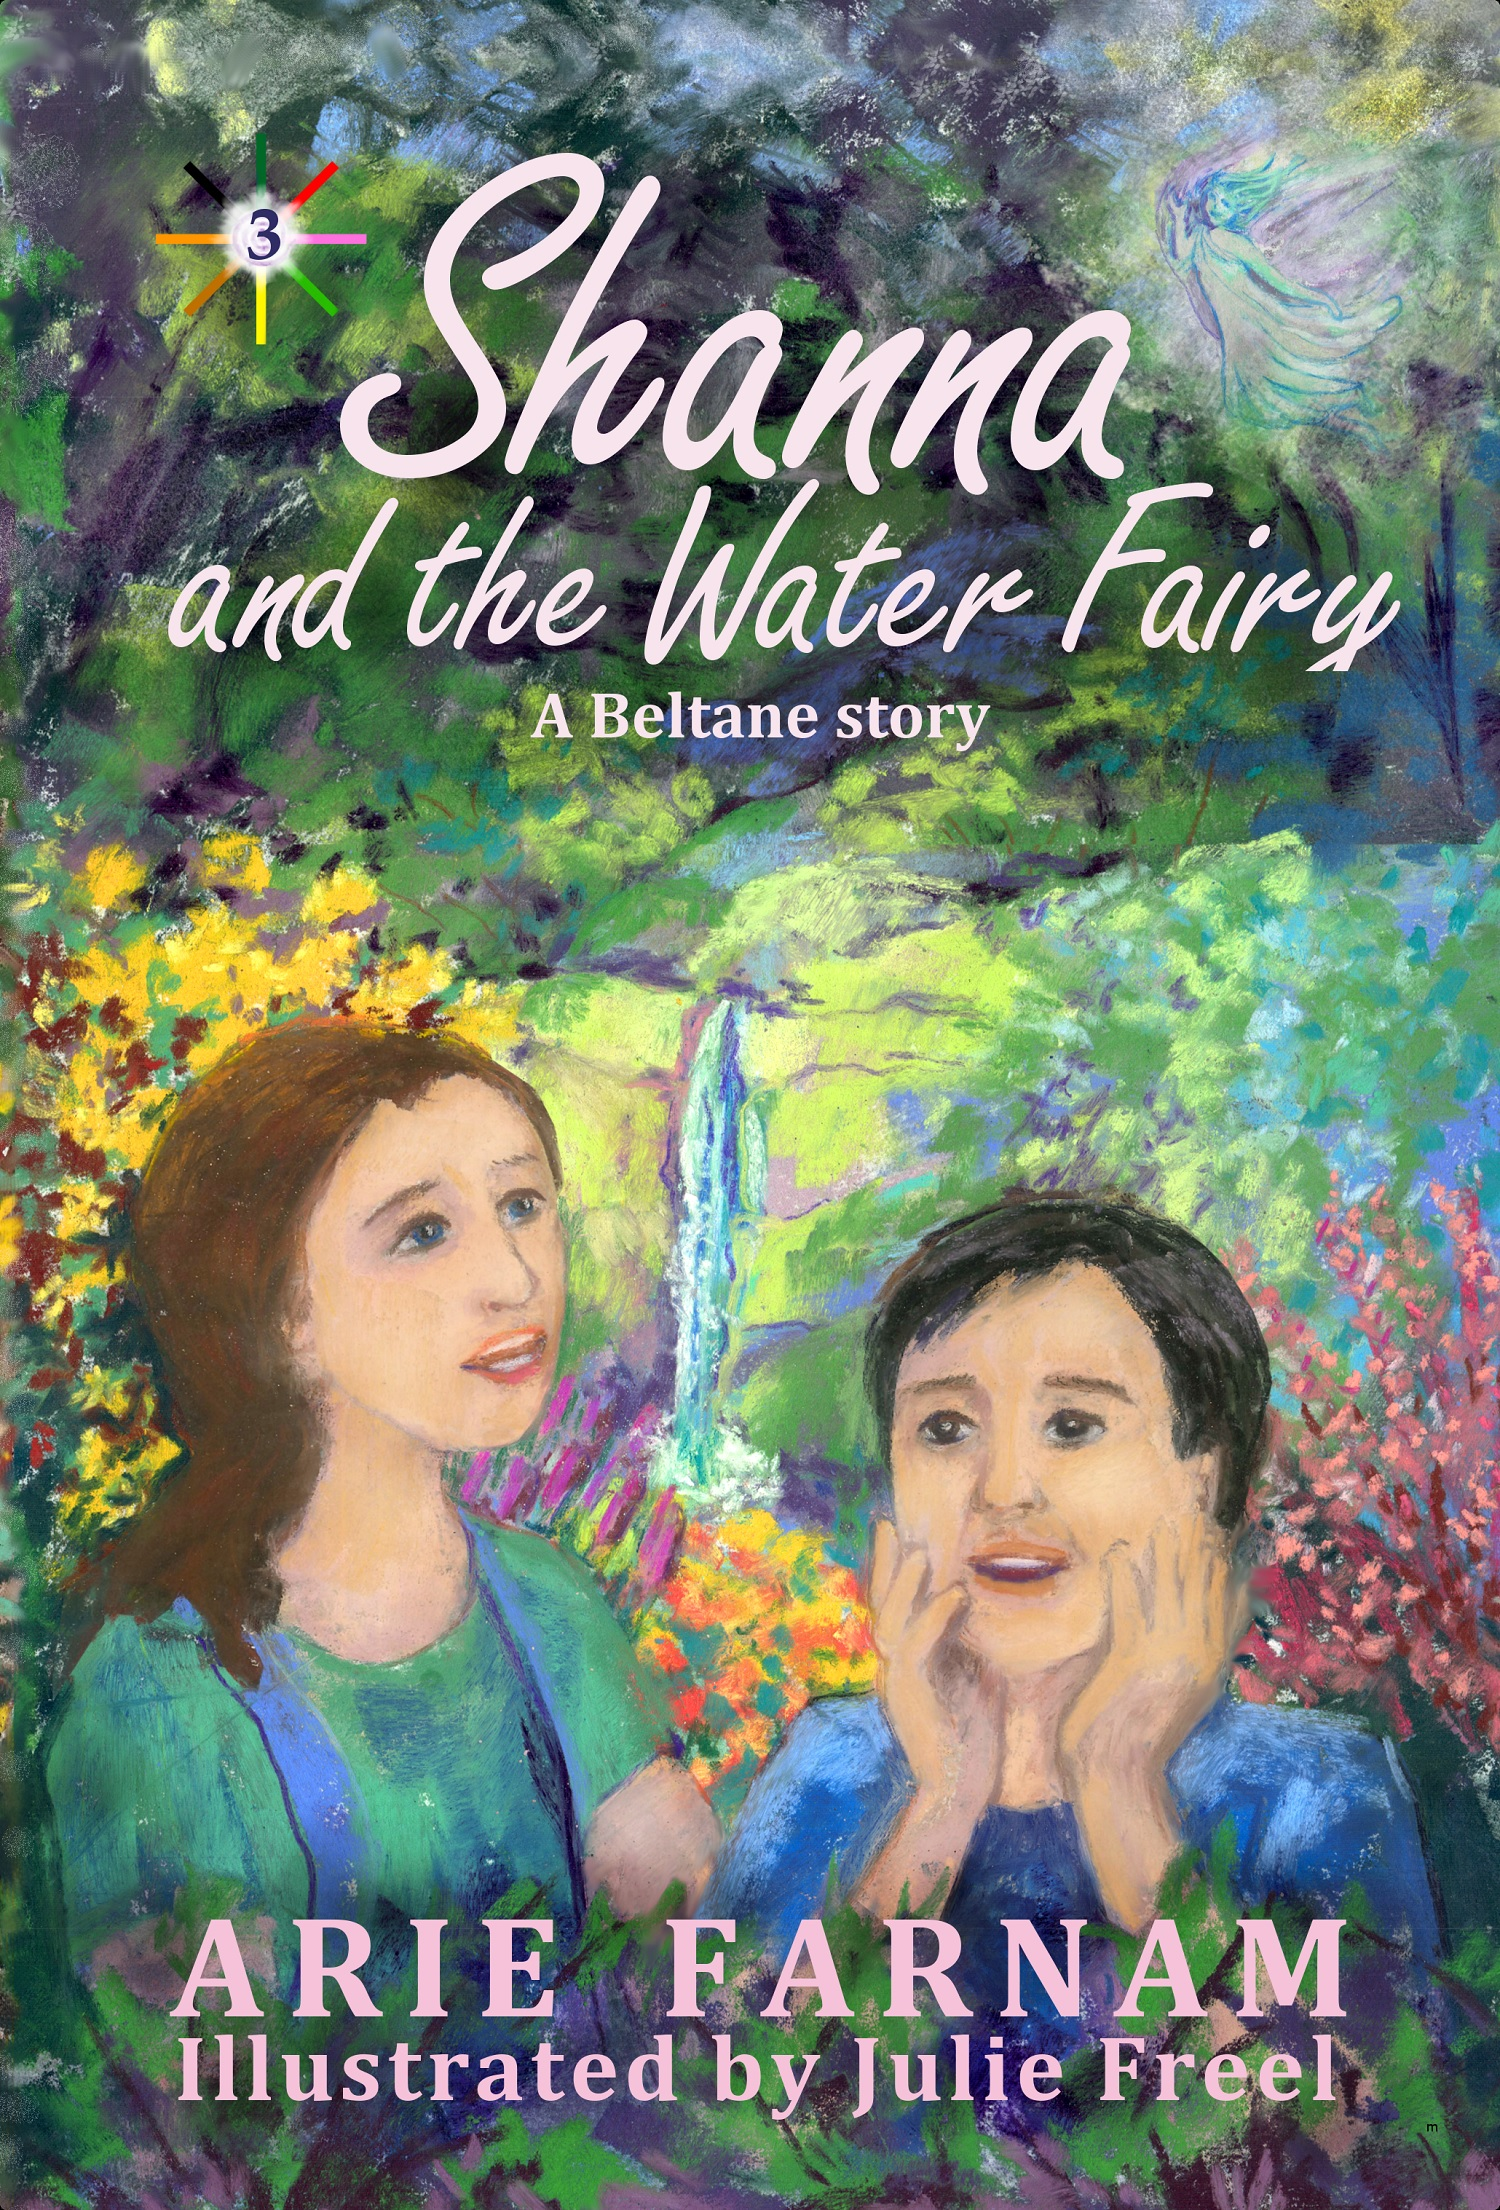 Shanna and the Water Fairy ebook cover.jpg